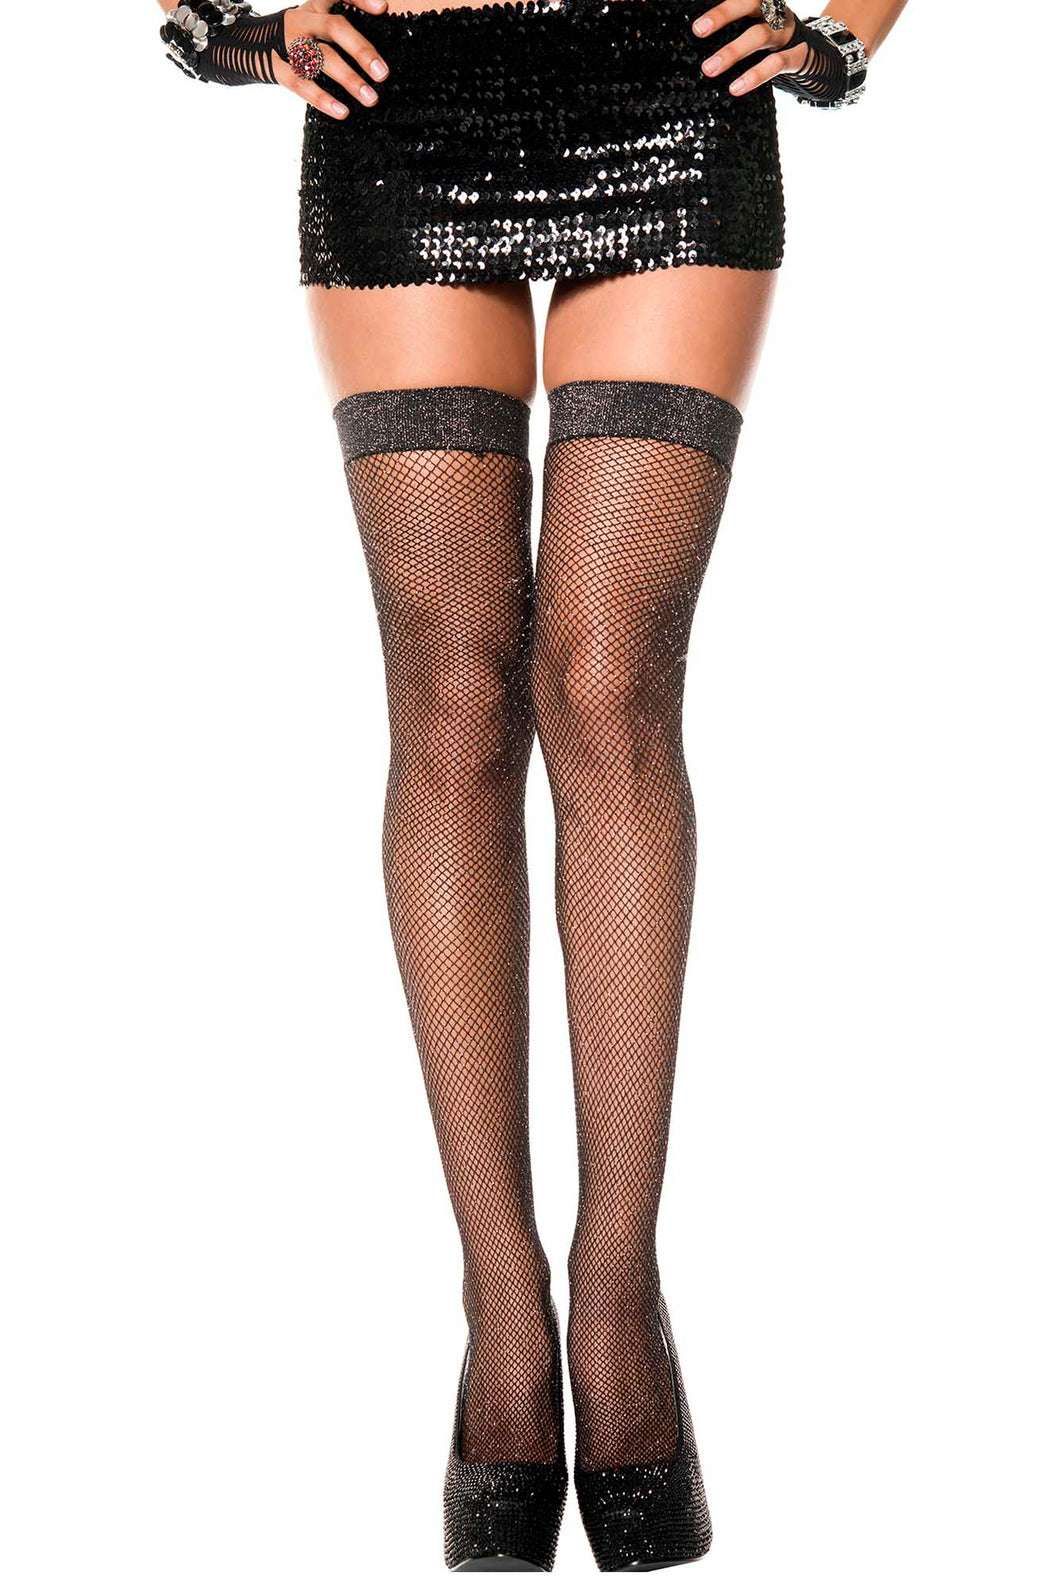 Shimmery Thigh Highs by Music Legs